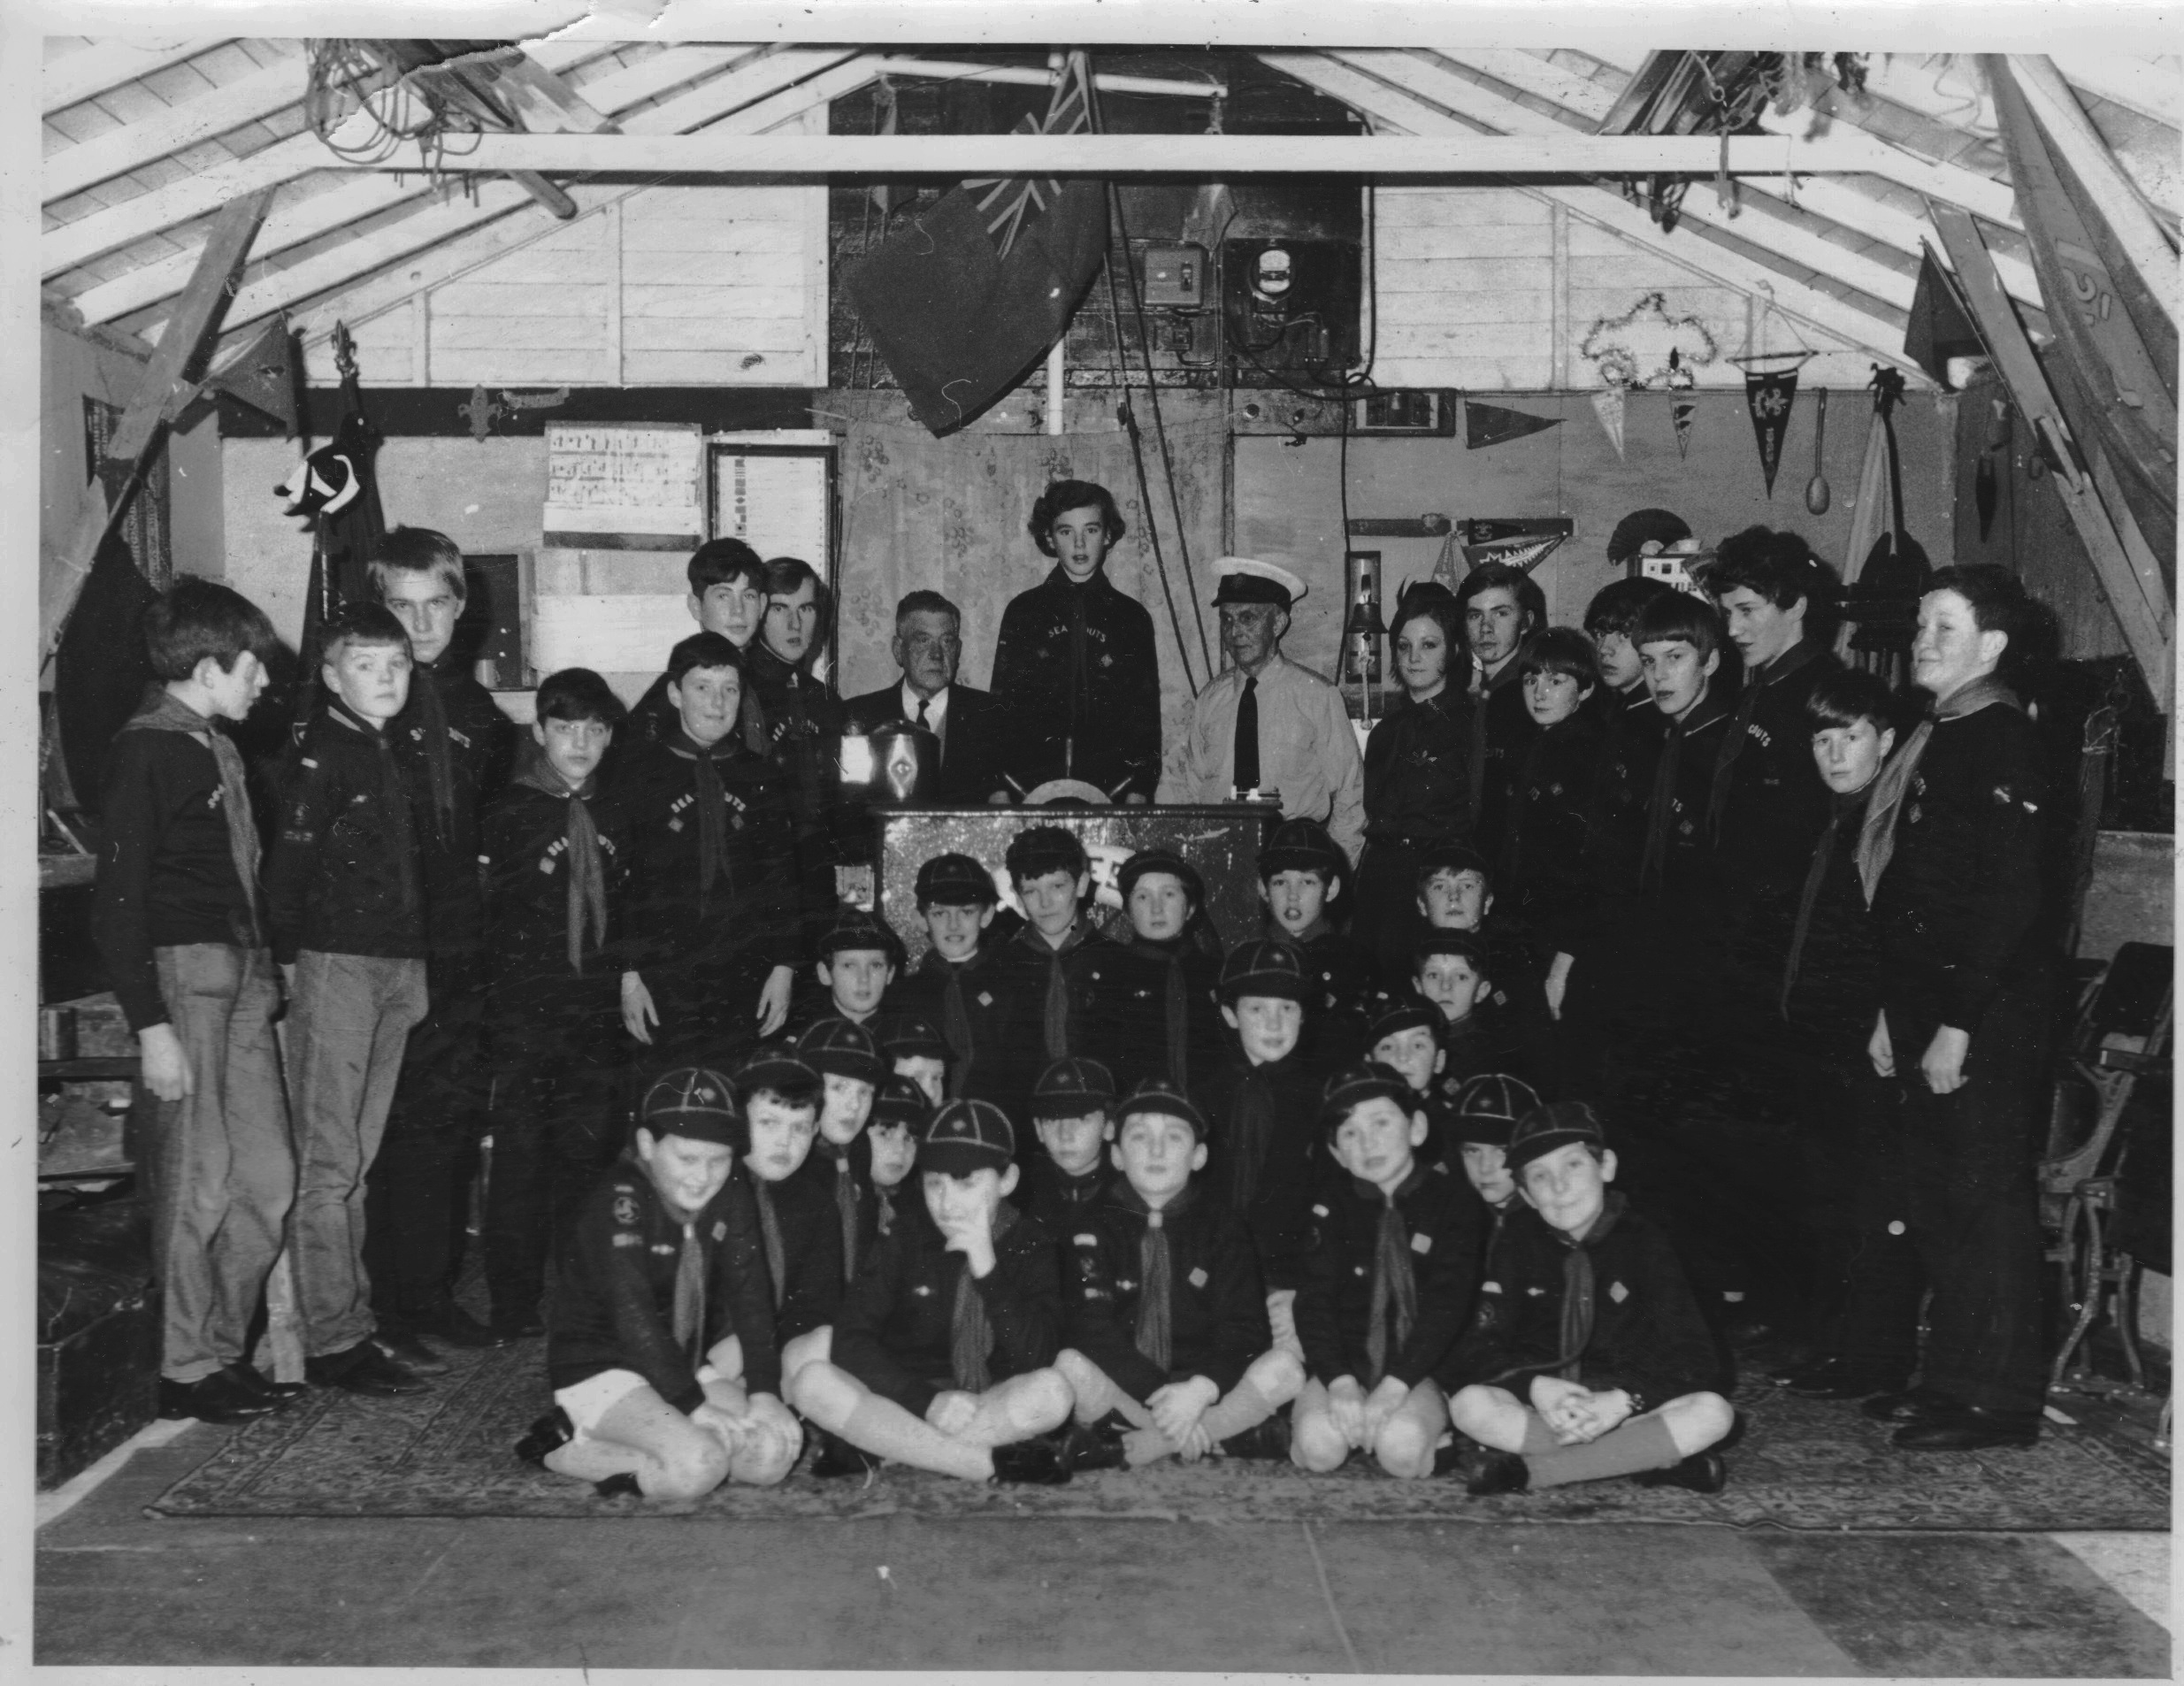 1971 Group Photo